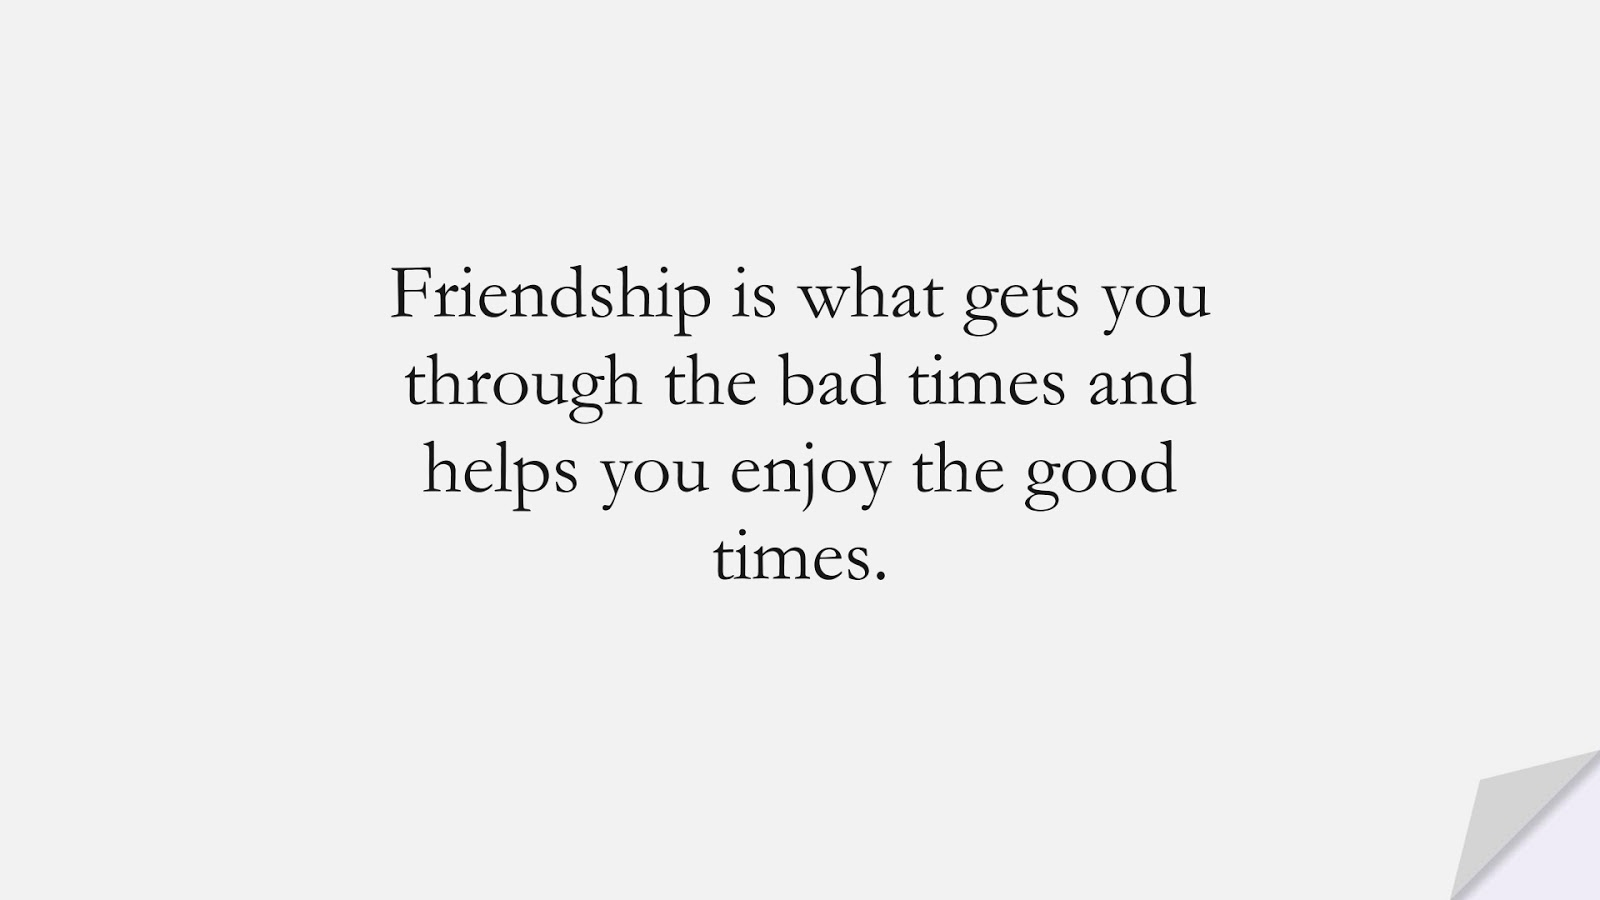 Friendship is what gets you through the bad times and helps you enjoy the good times.FALSE